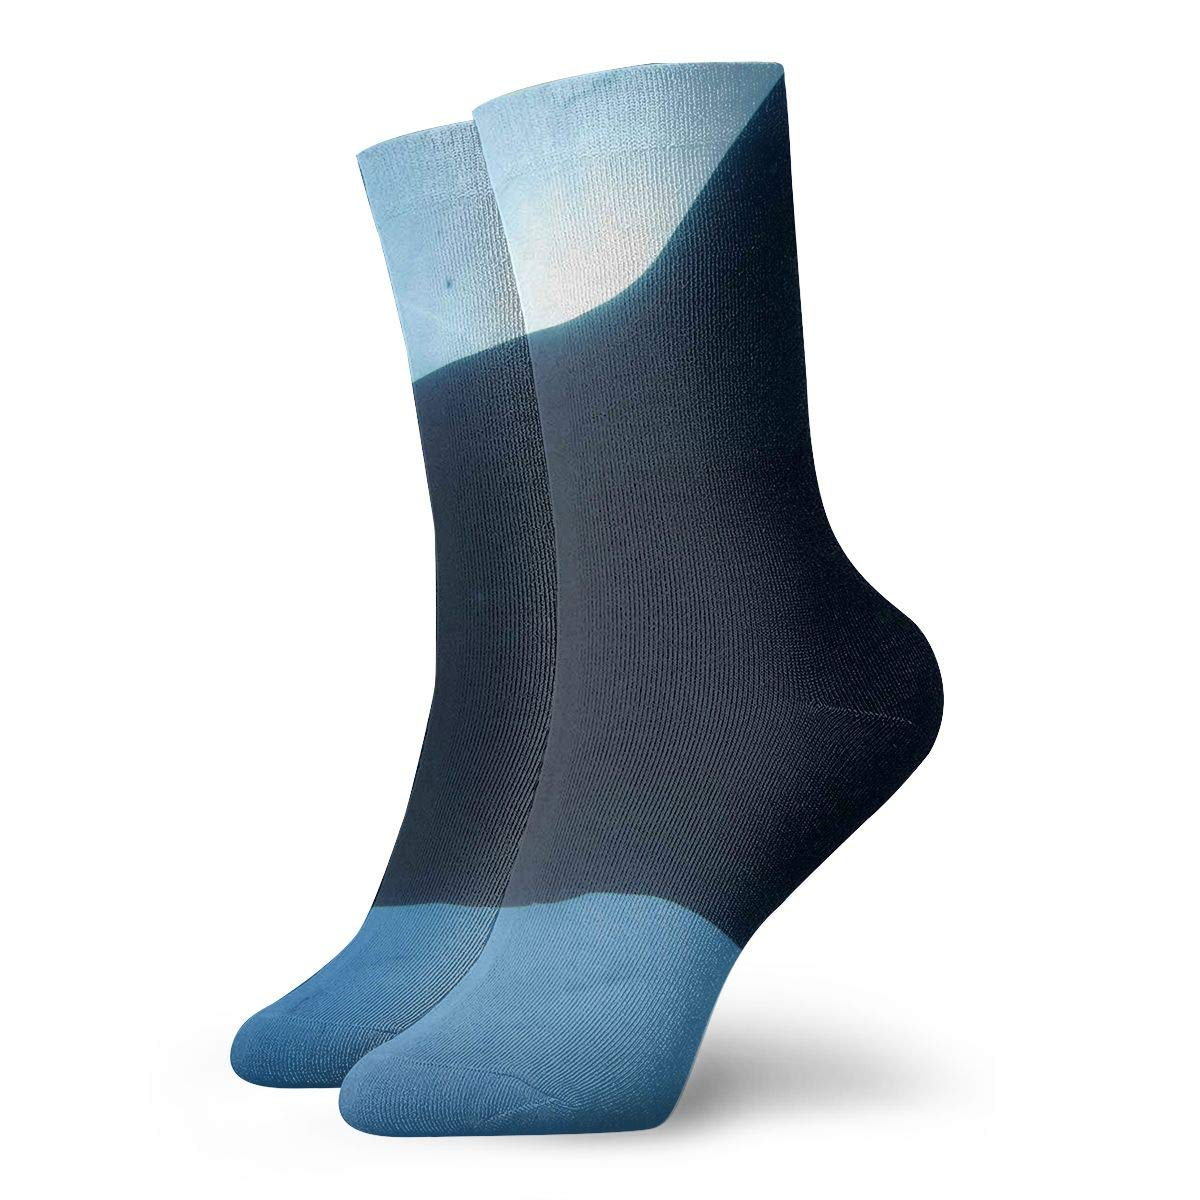 WEEDKEYCAT Whale Shark in Ocean Adult Short Socks Cotton Gym Socks for Mens Womens Yoga Hiking Cycling Running Soccer Sports